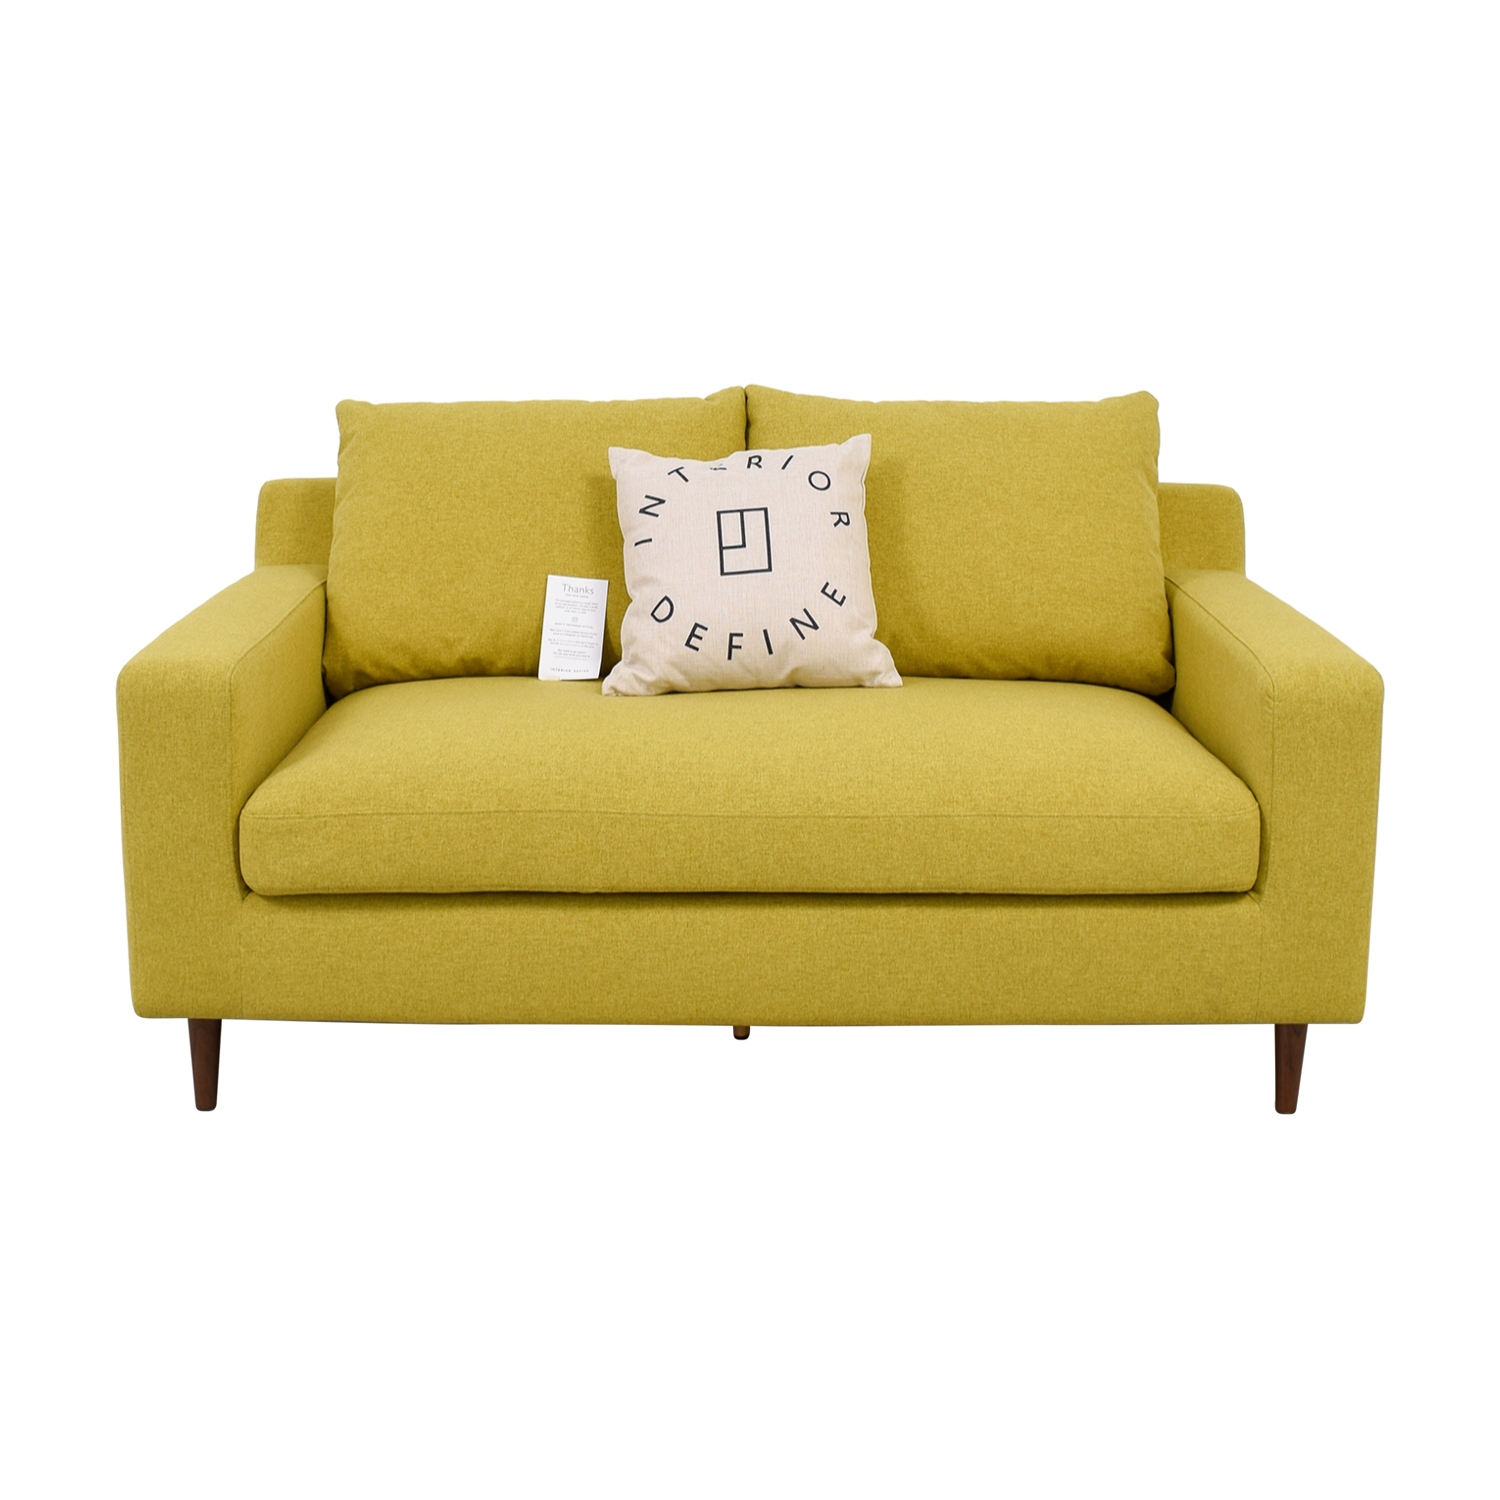 rio single base loveseat